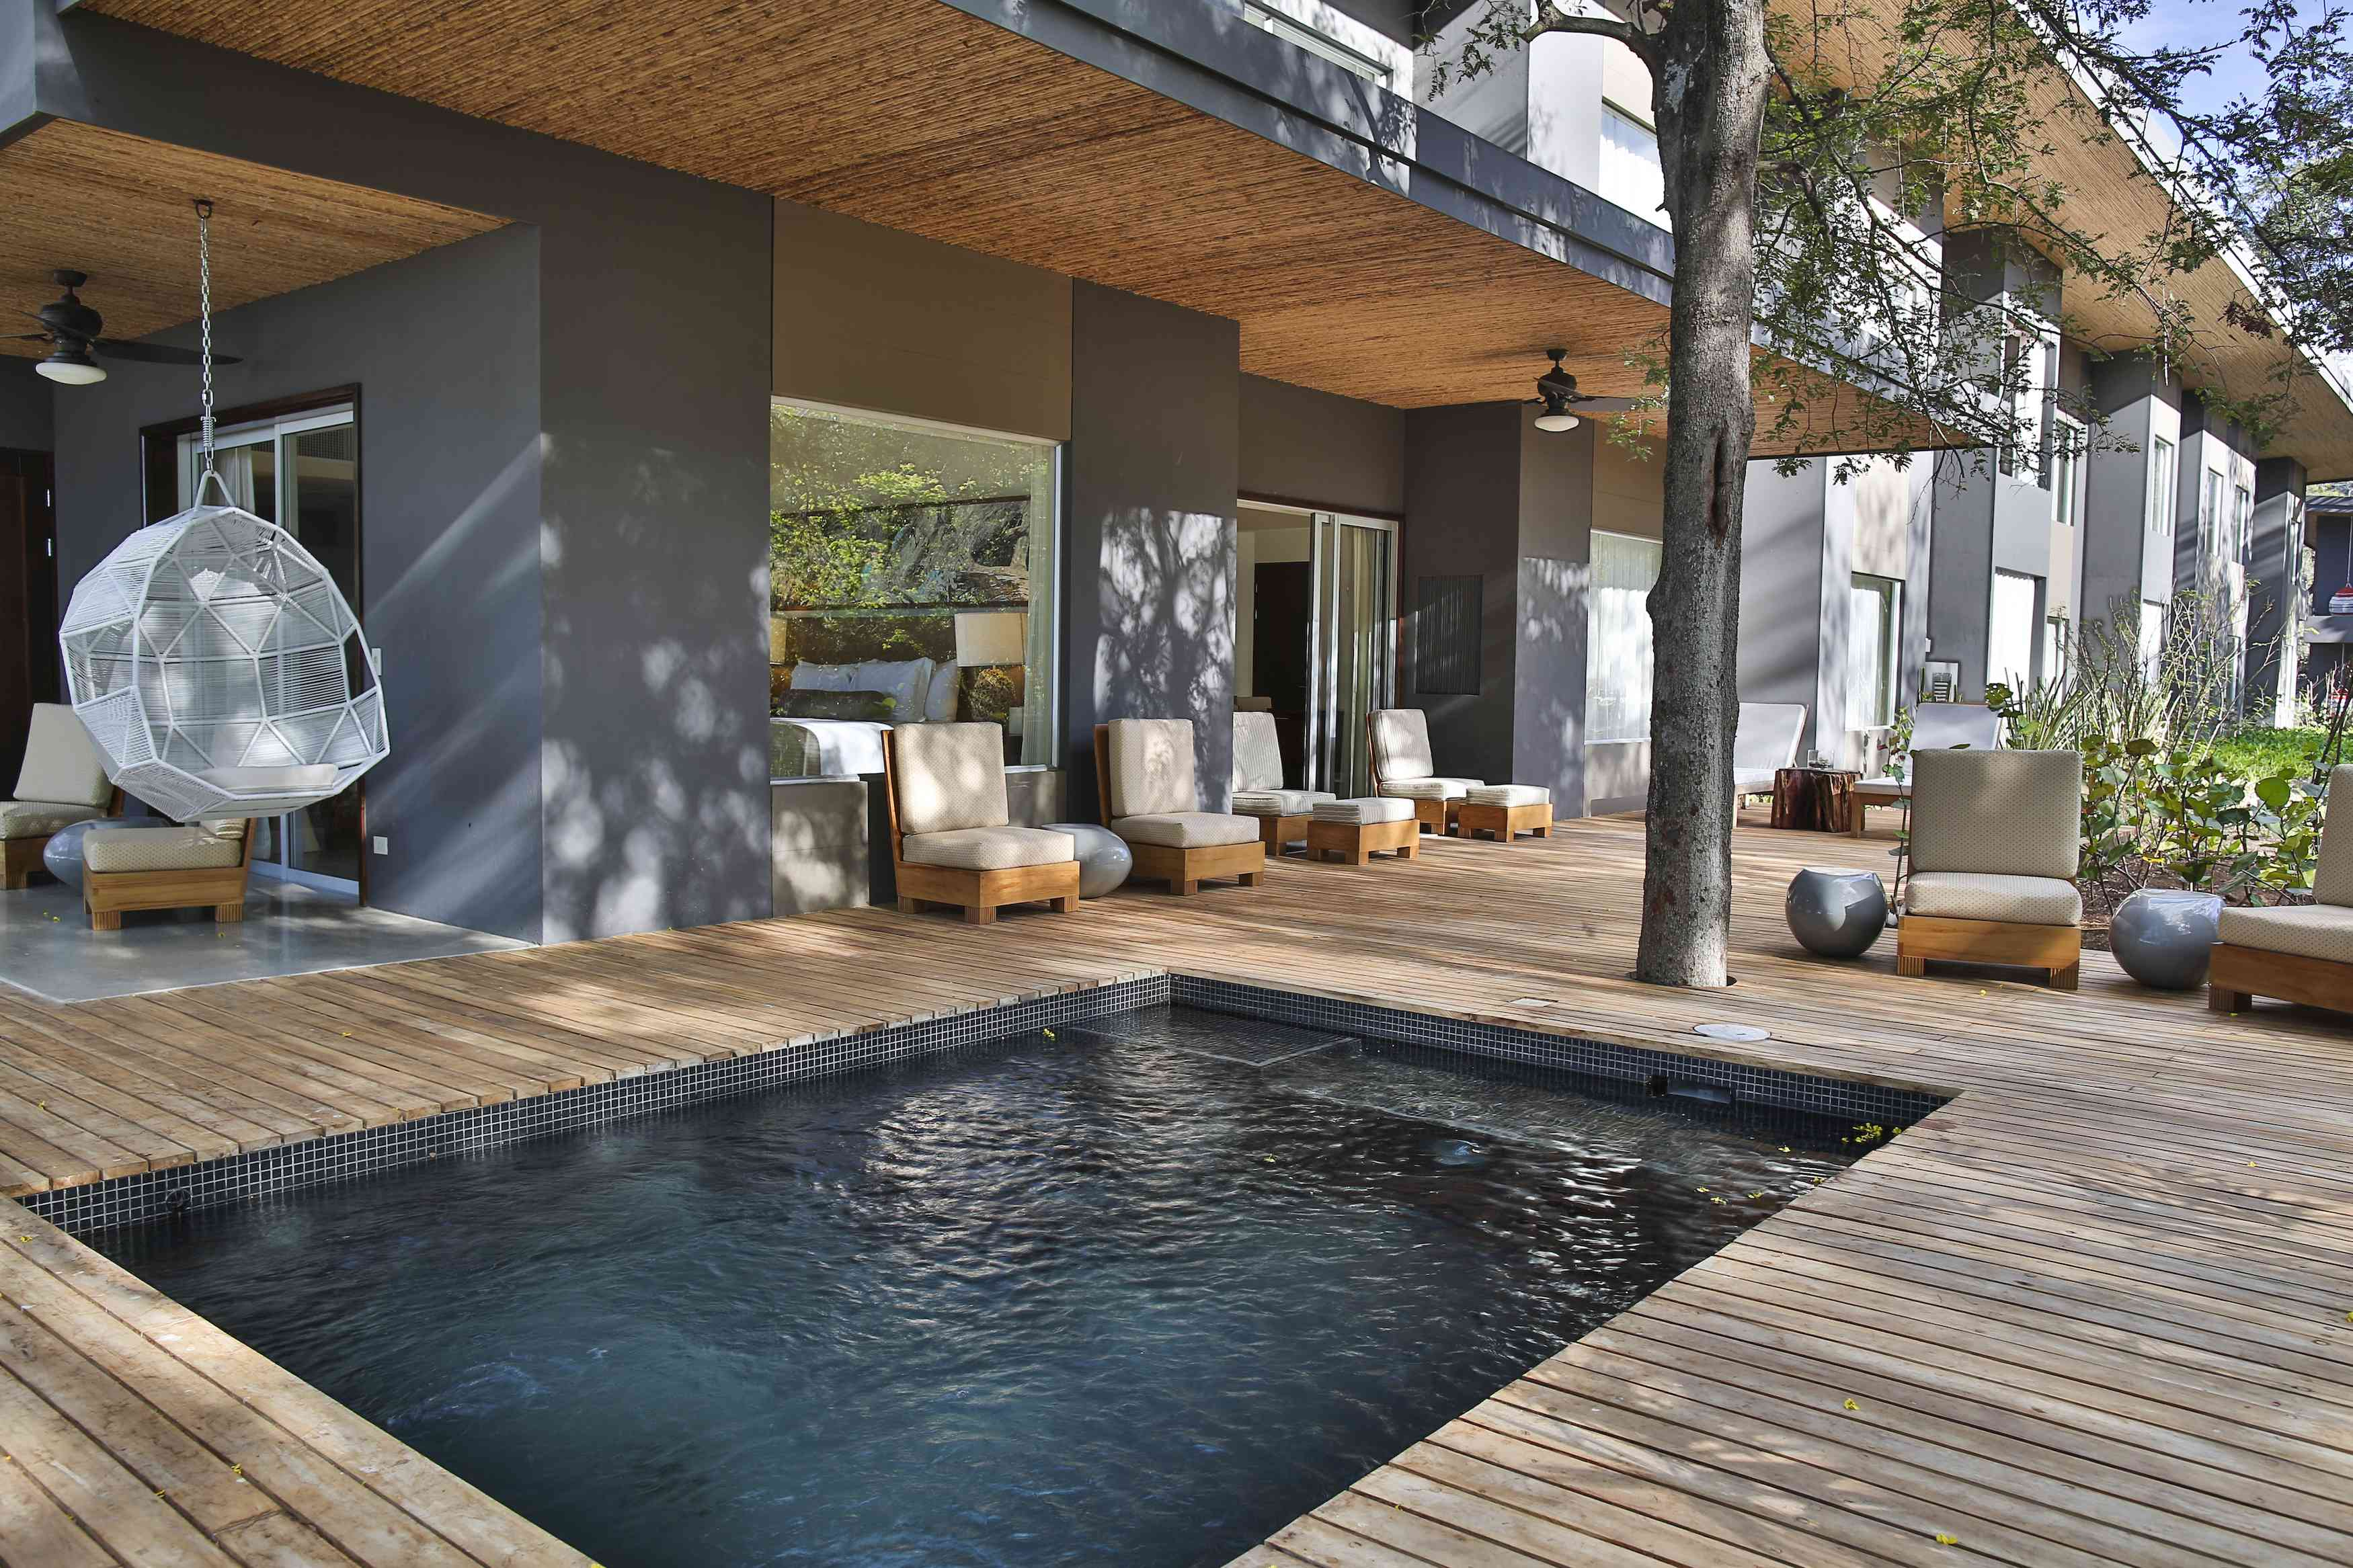 Private pool and pool deck at El Mangroove in Costa Rica